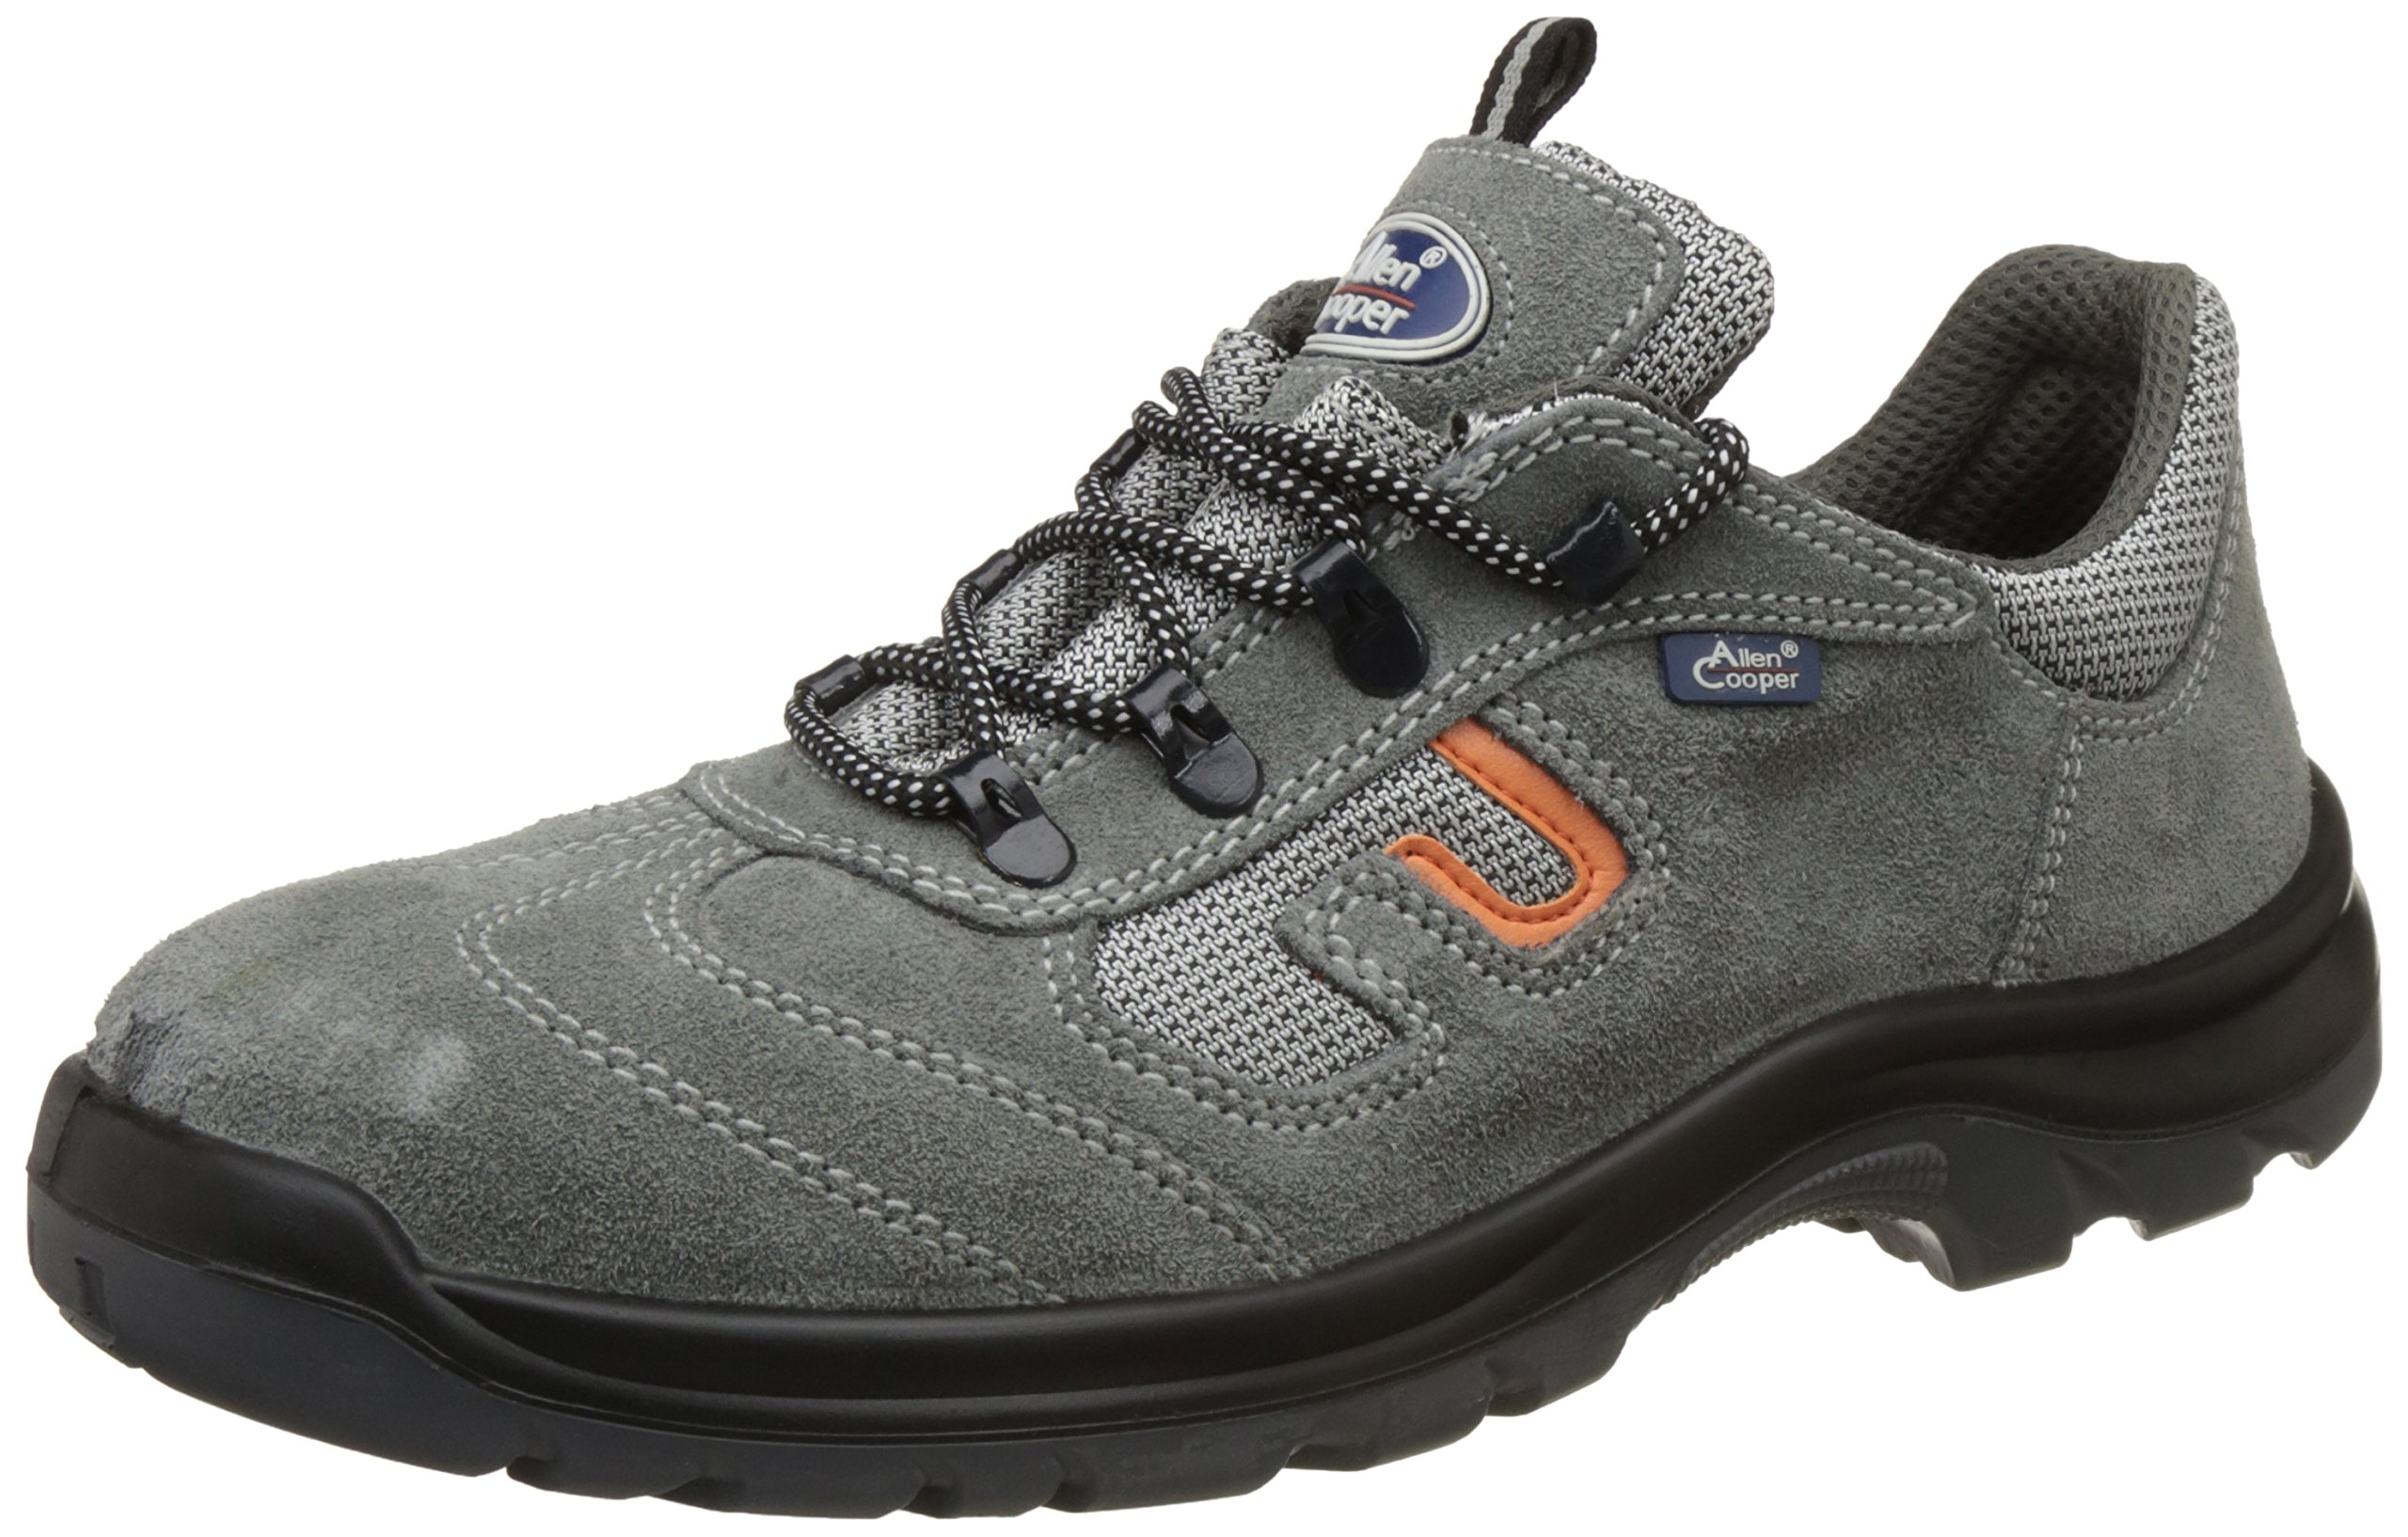 Allen Cooper AC-1459 Safety Shoe, Double Density DIP-PU Sole, Grey, Size 10